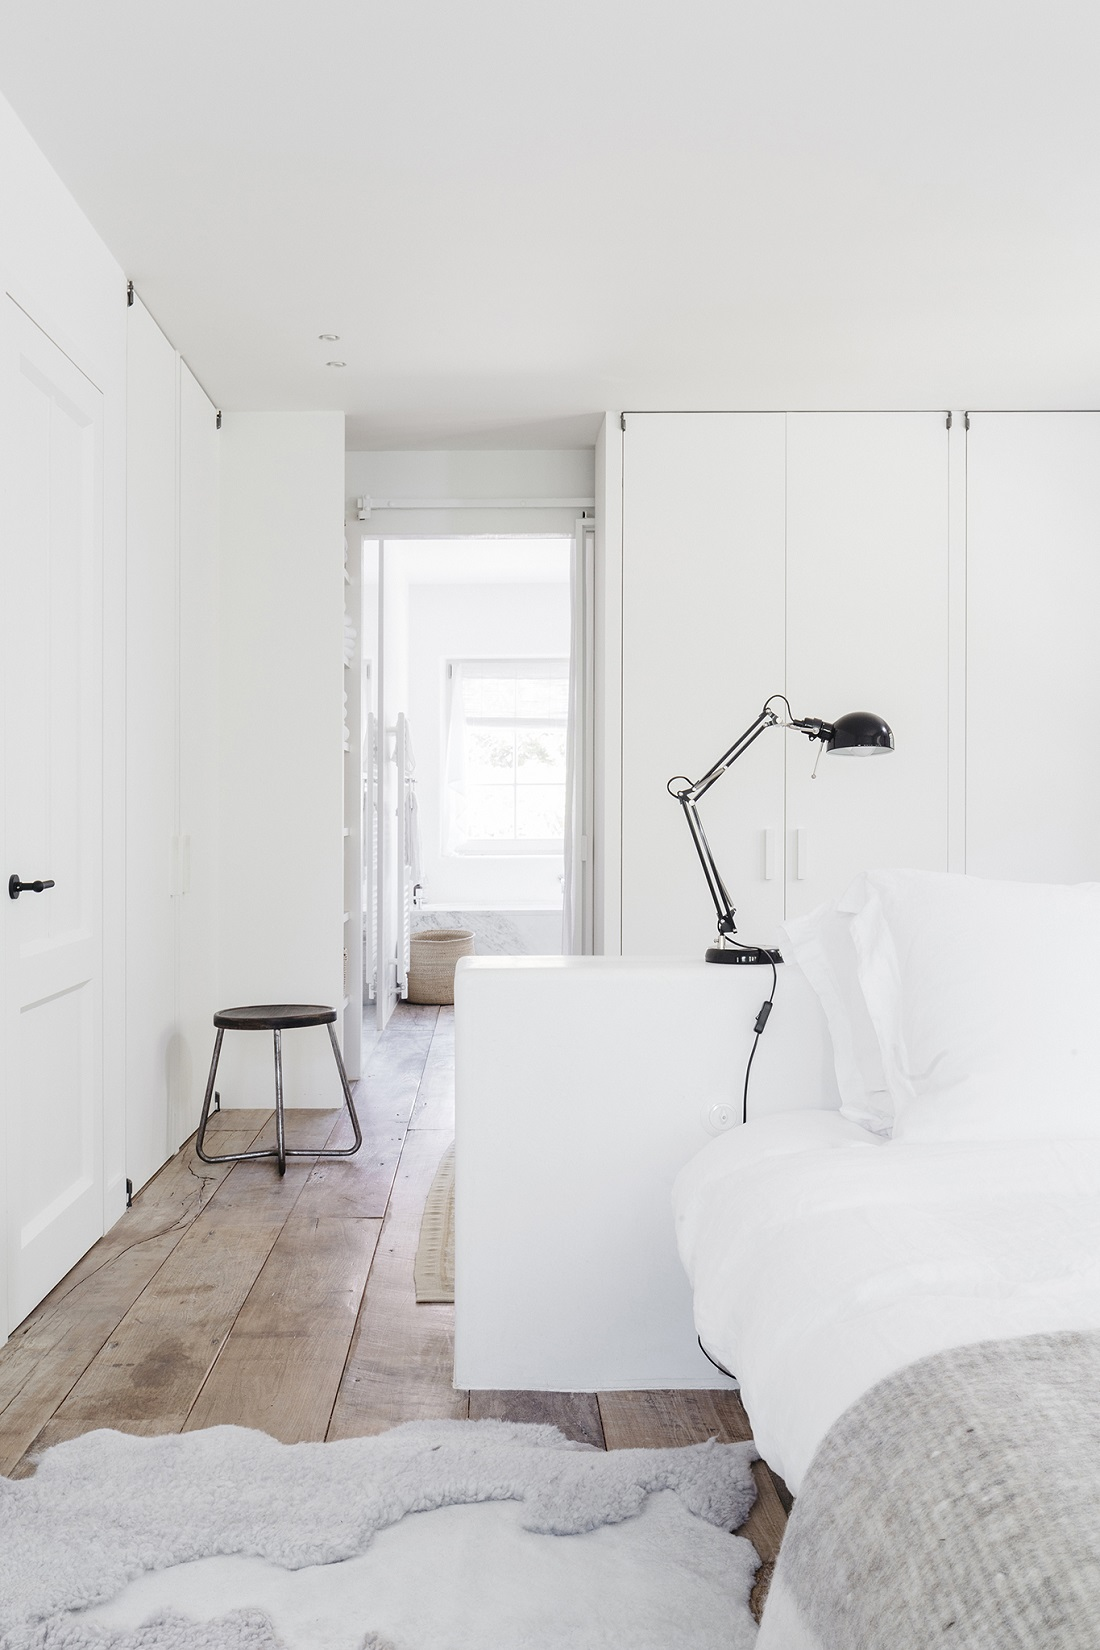 The Nordroom - A Beautiful White Summerhouse in Belgium